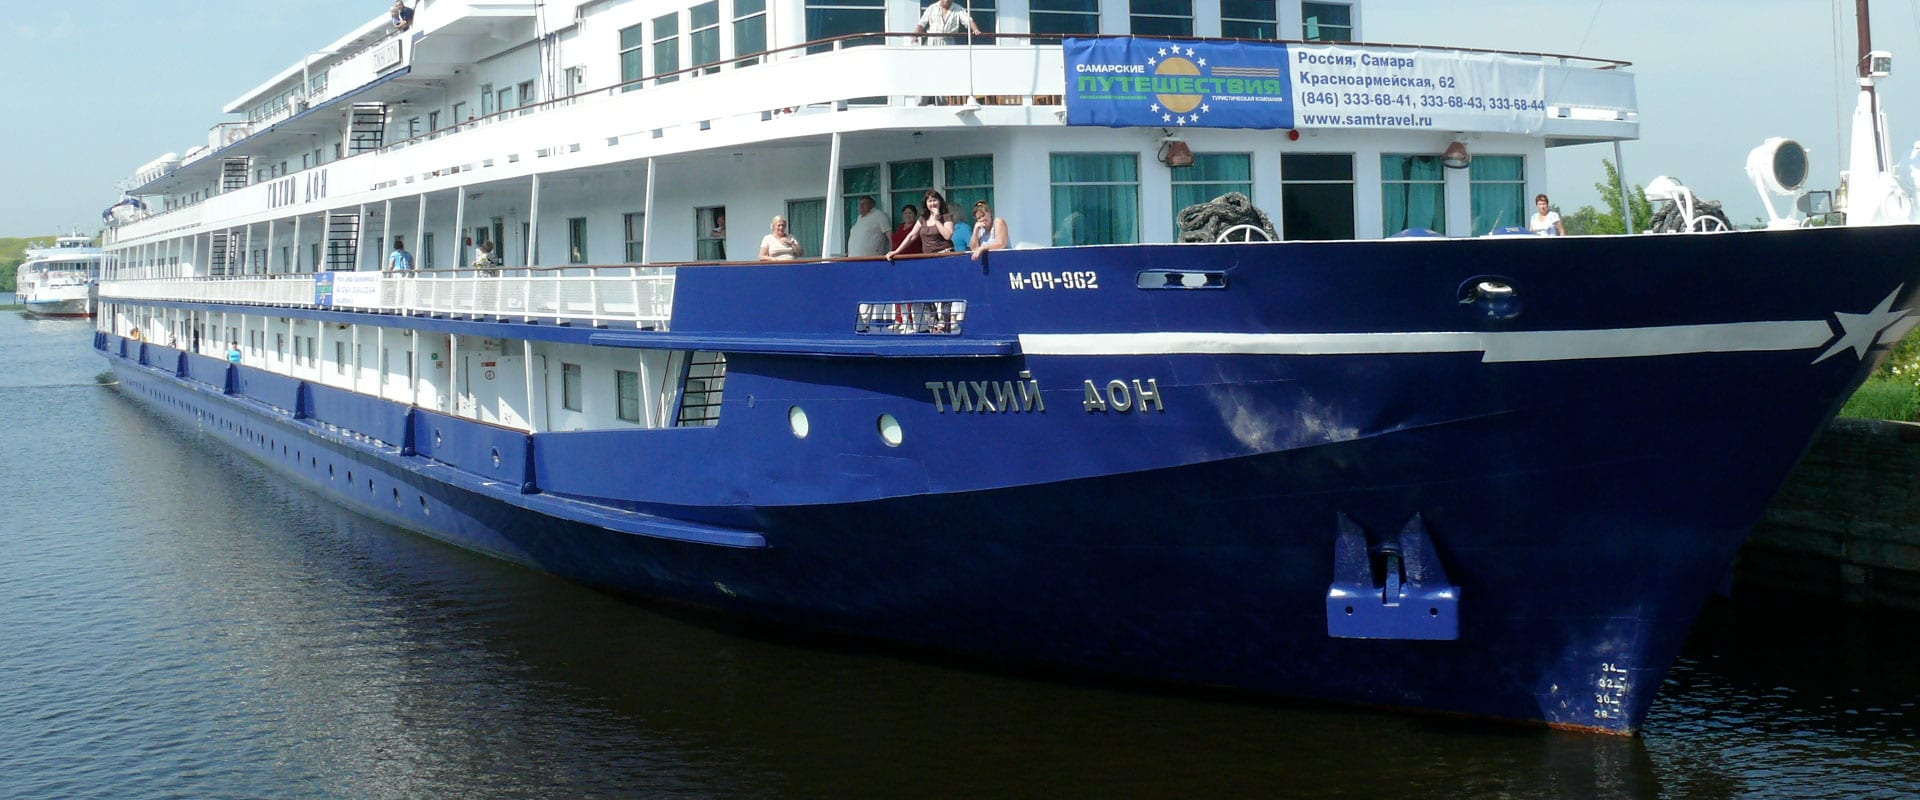 CRUZEIRO IMPERIAL RIVER CRUISES MOSCOU – SÃO PETERSBURGO A BORDO DO TIKHI DON